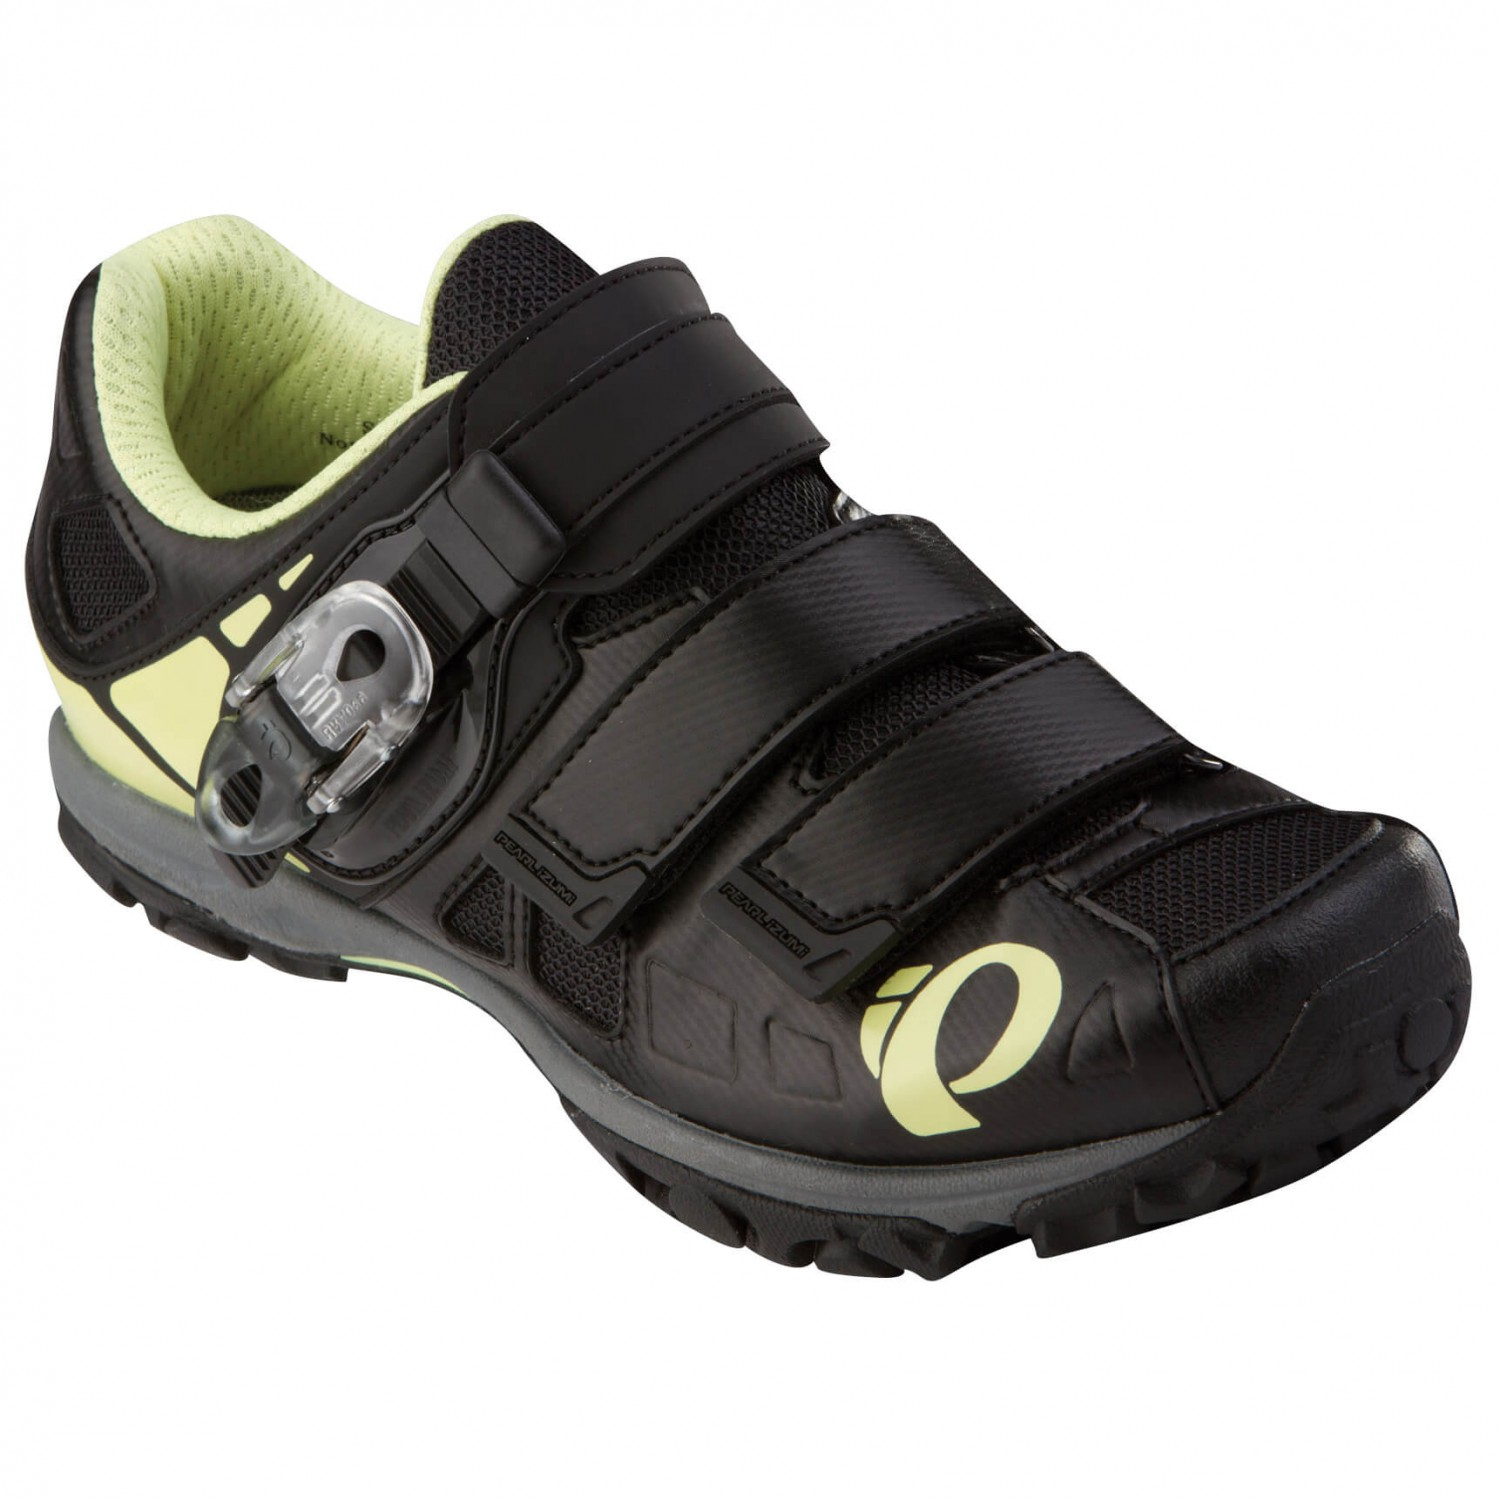 pearl izumi x alp enduro iv cycling shoes s buy